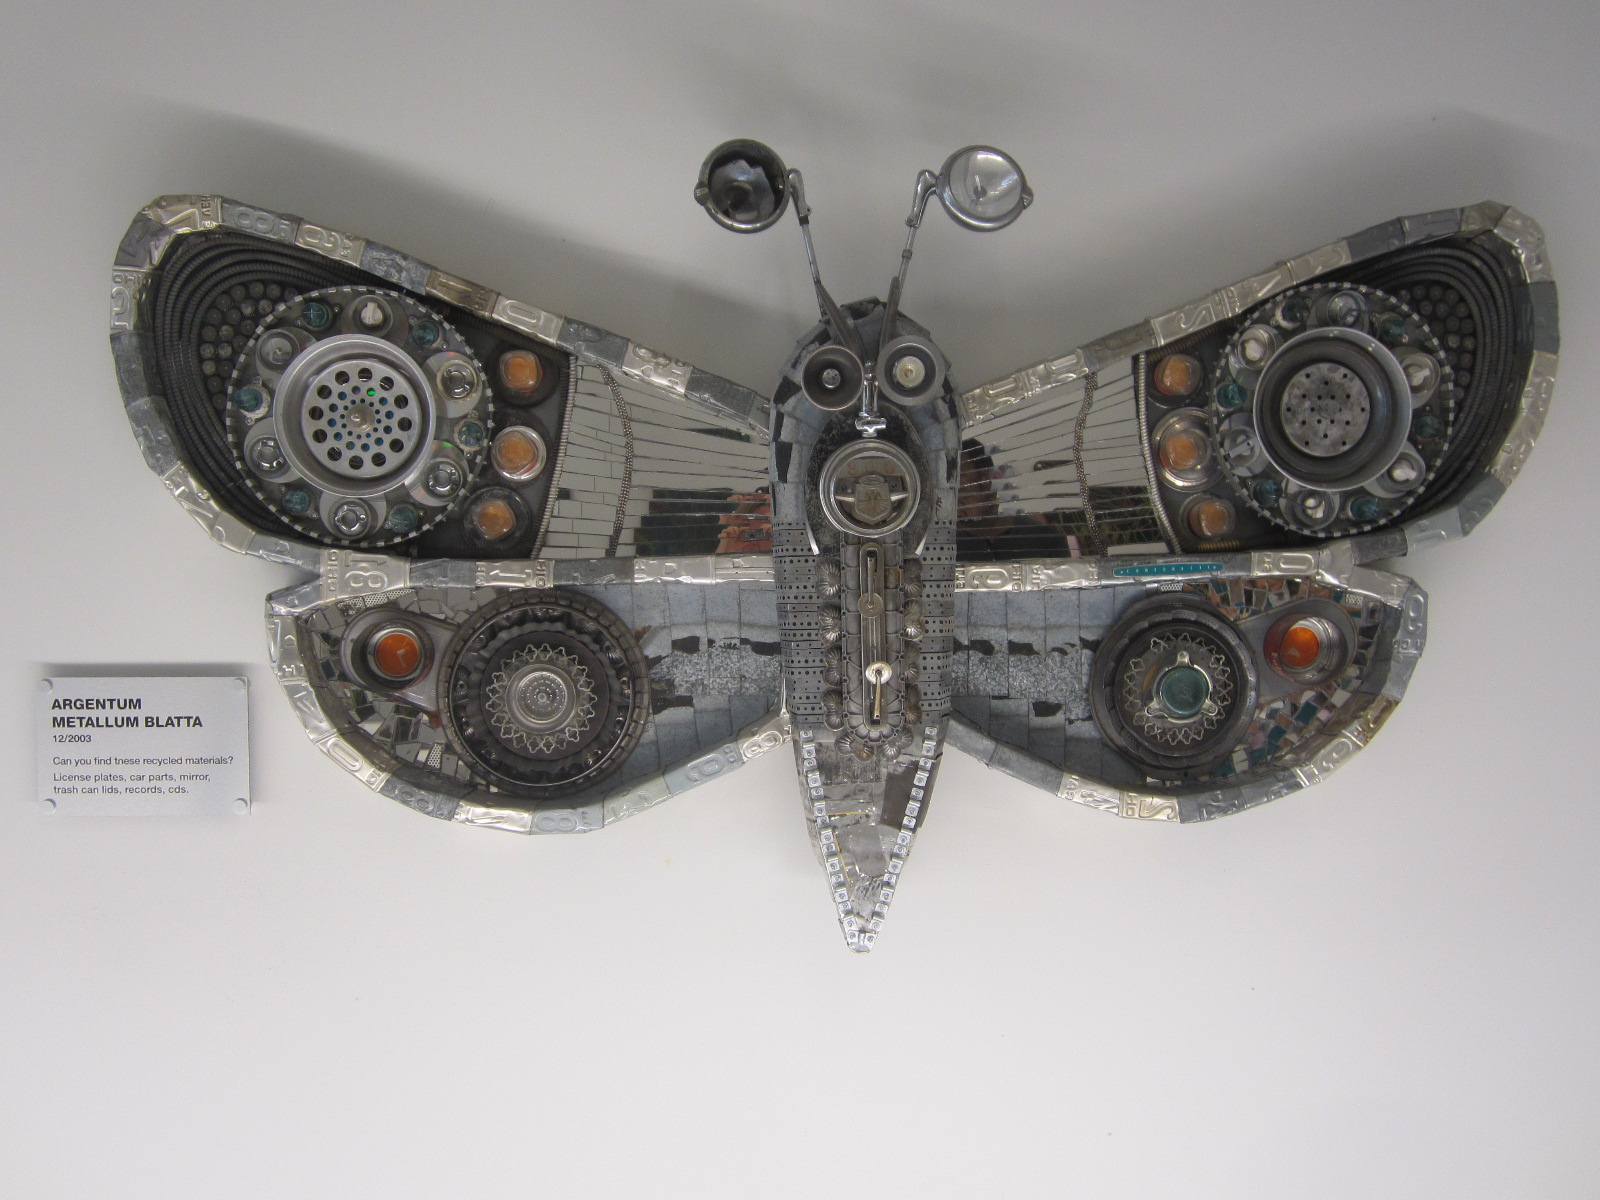 Argentum Metallum Blatta Moth sculpture by Michelle Stitzlein